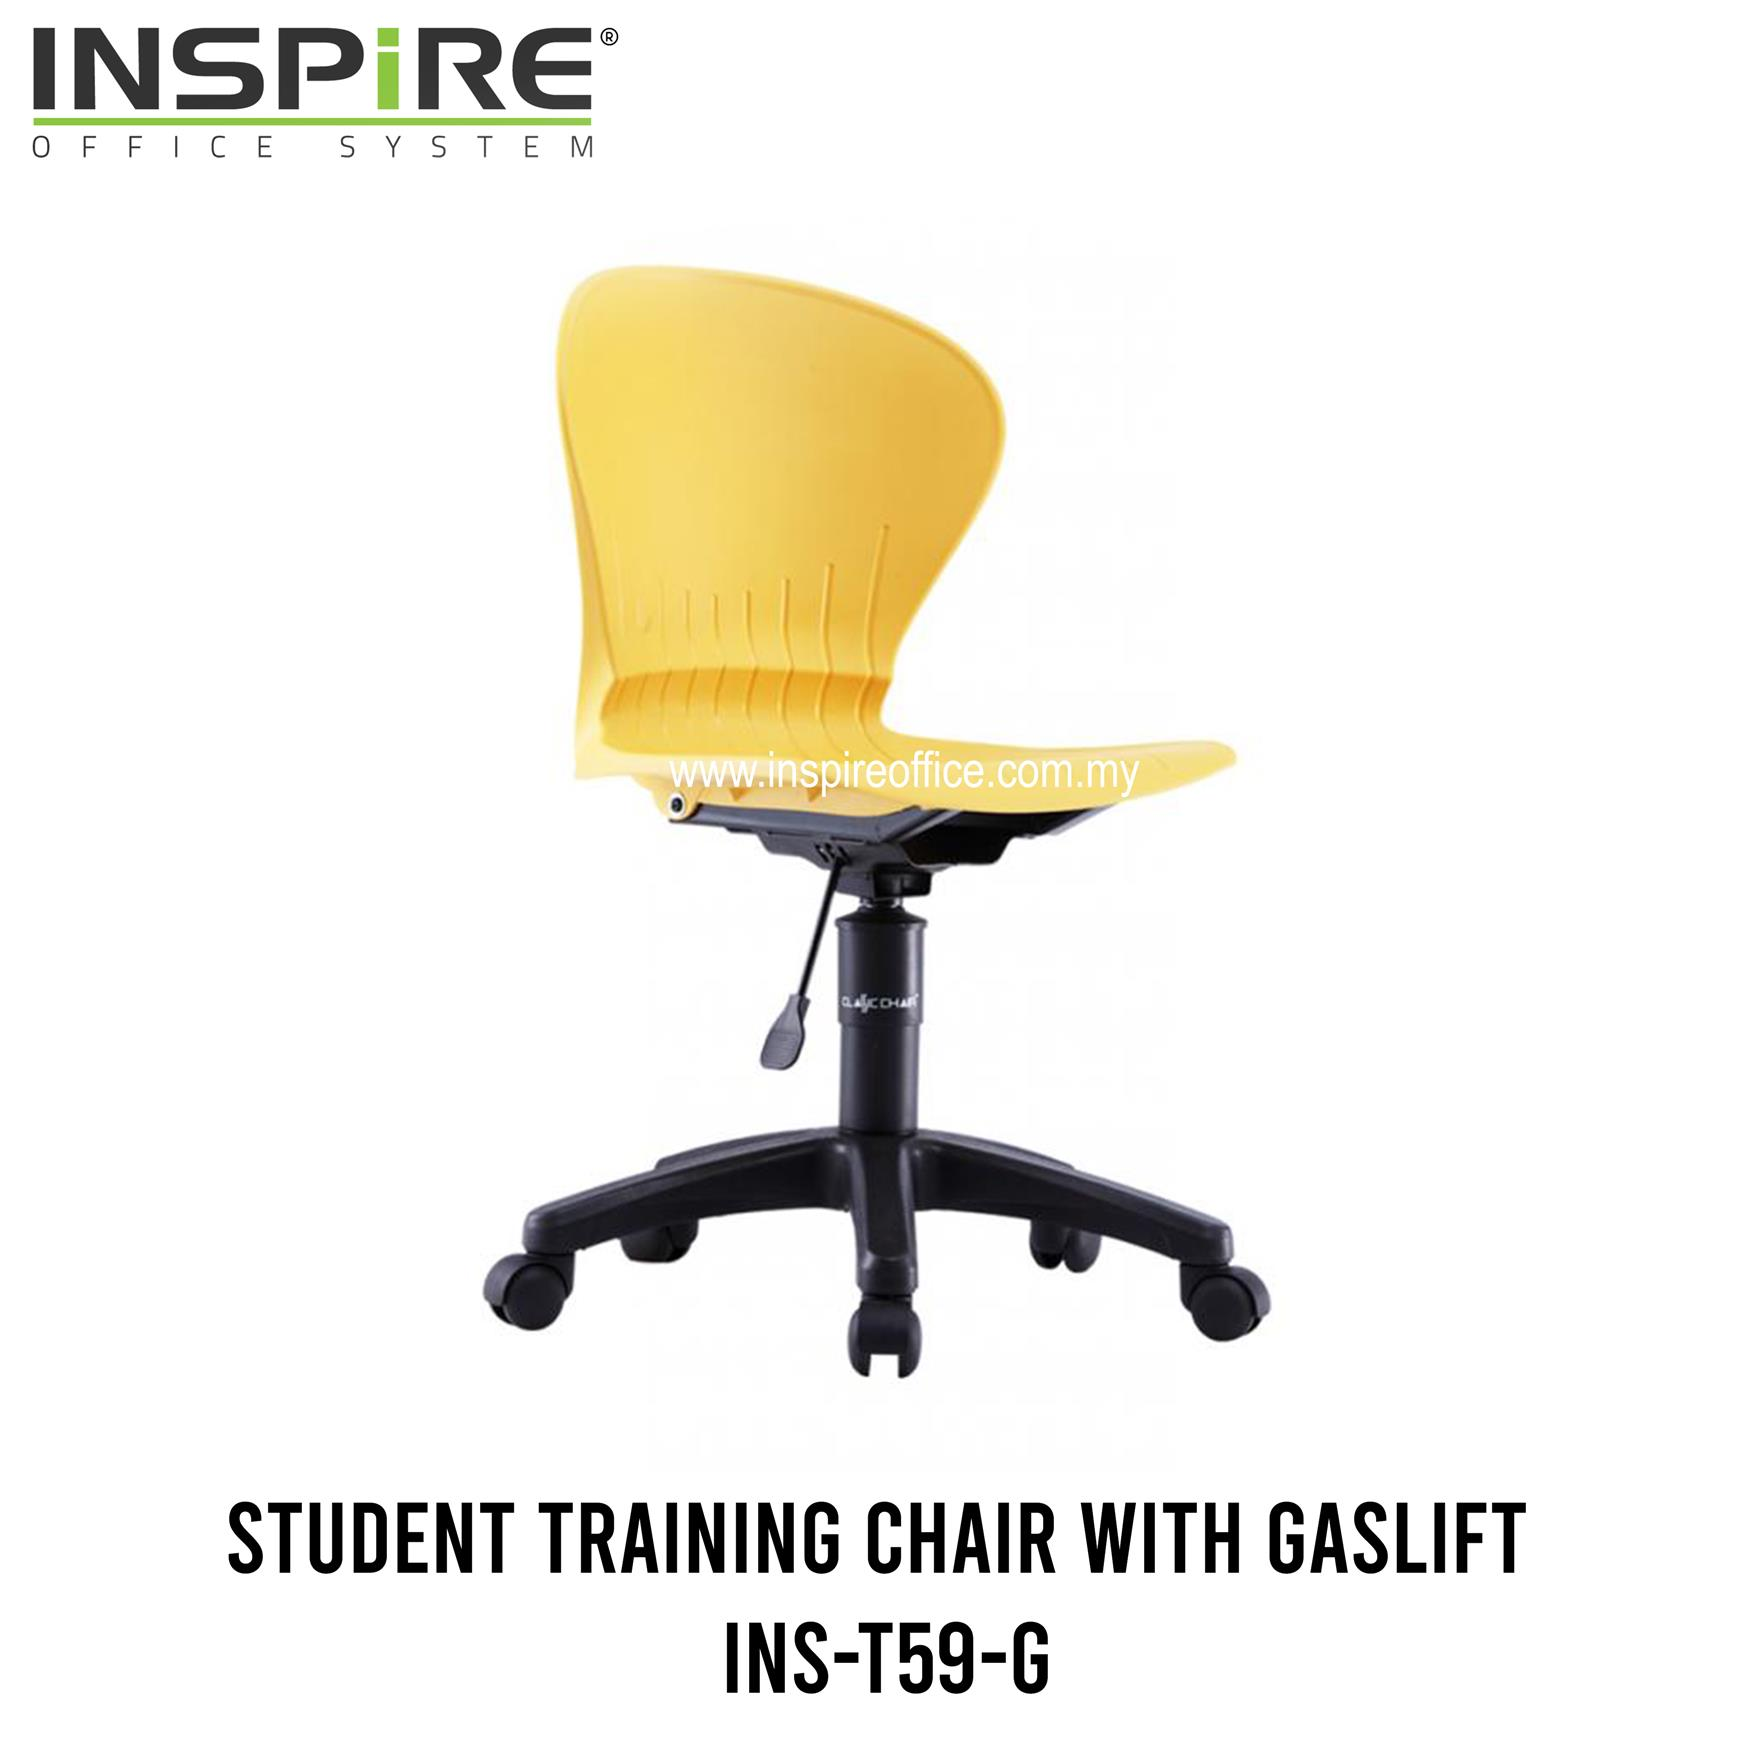 INS-T59-G Training/Student Chair With Gaslift